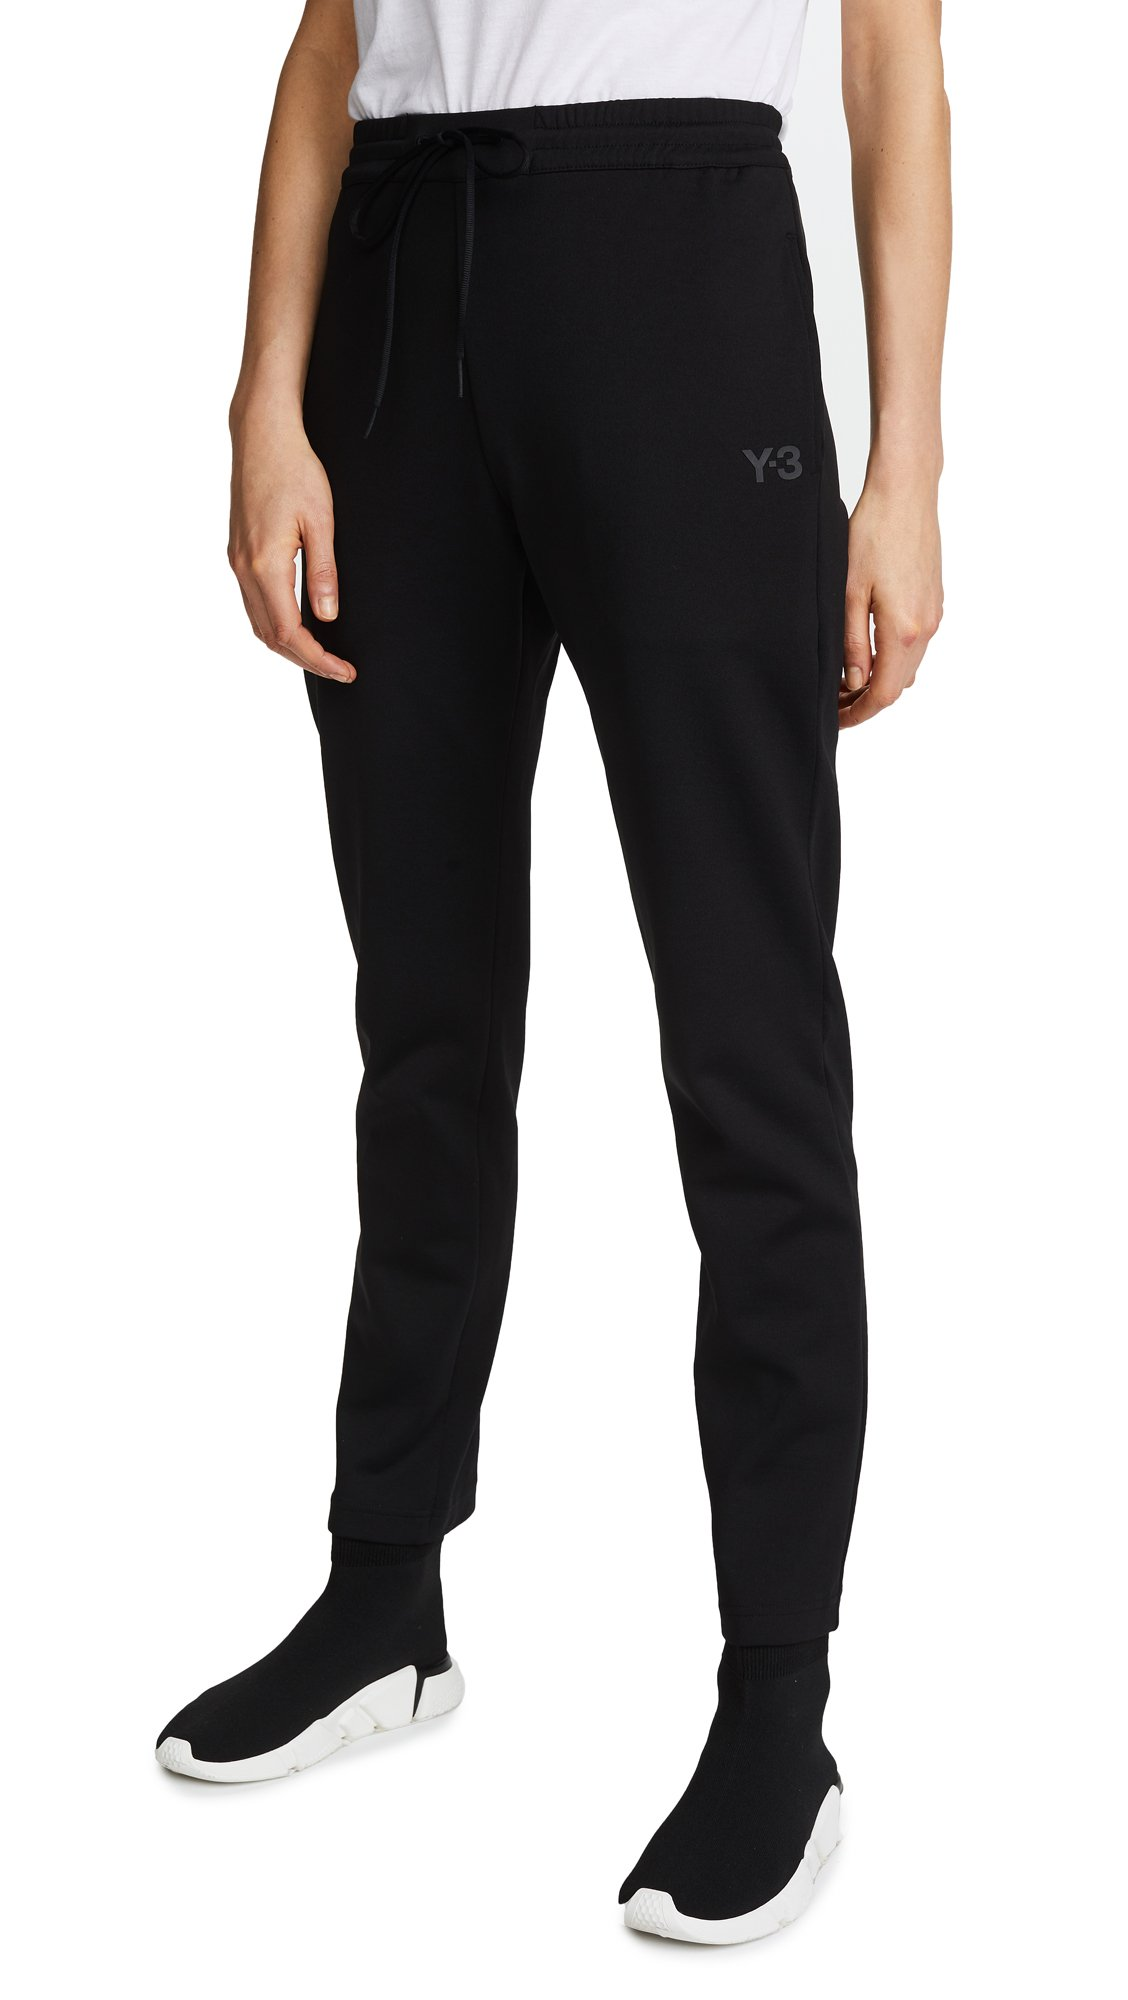 Y-3 Women's Matte Track Pants, Black, Large by adidas